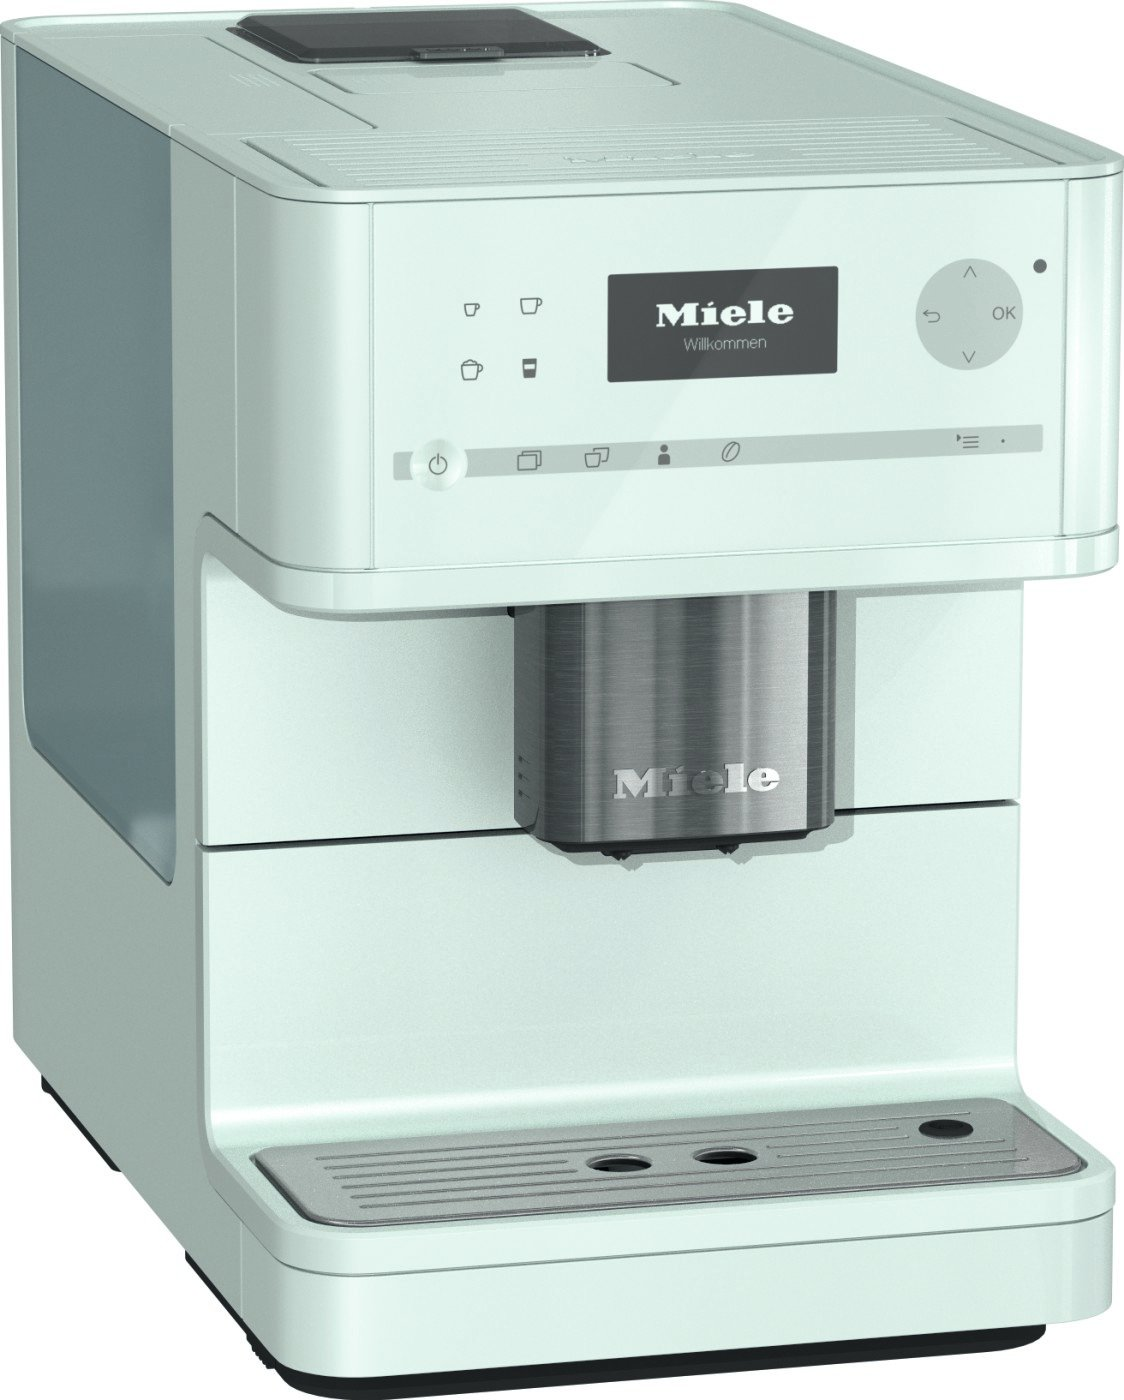 Miele CM6150 Lotus White Countertop Coffee Machine (Renewed) (Lotus White) by Miele